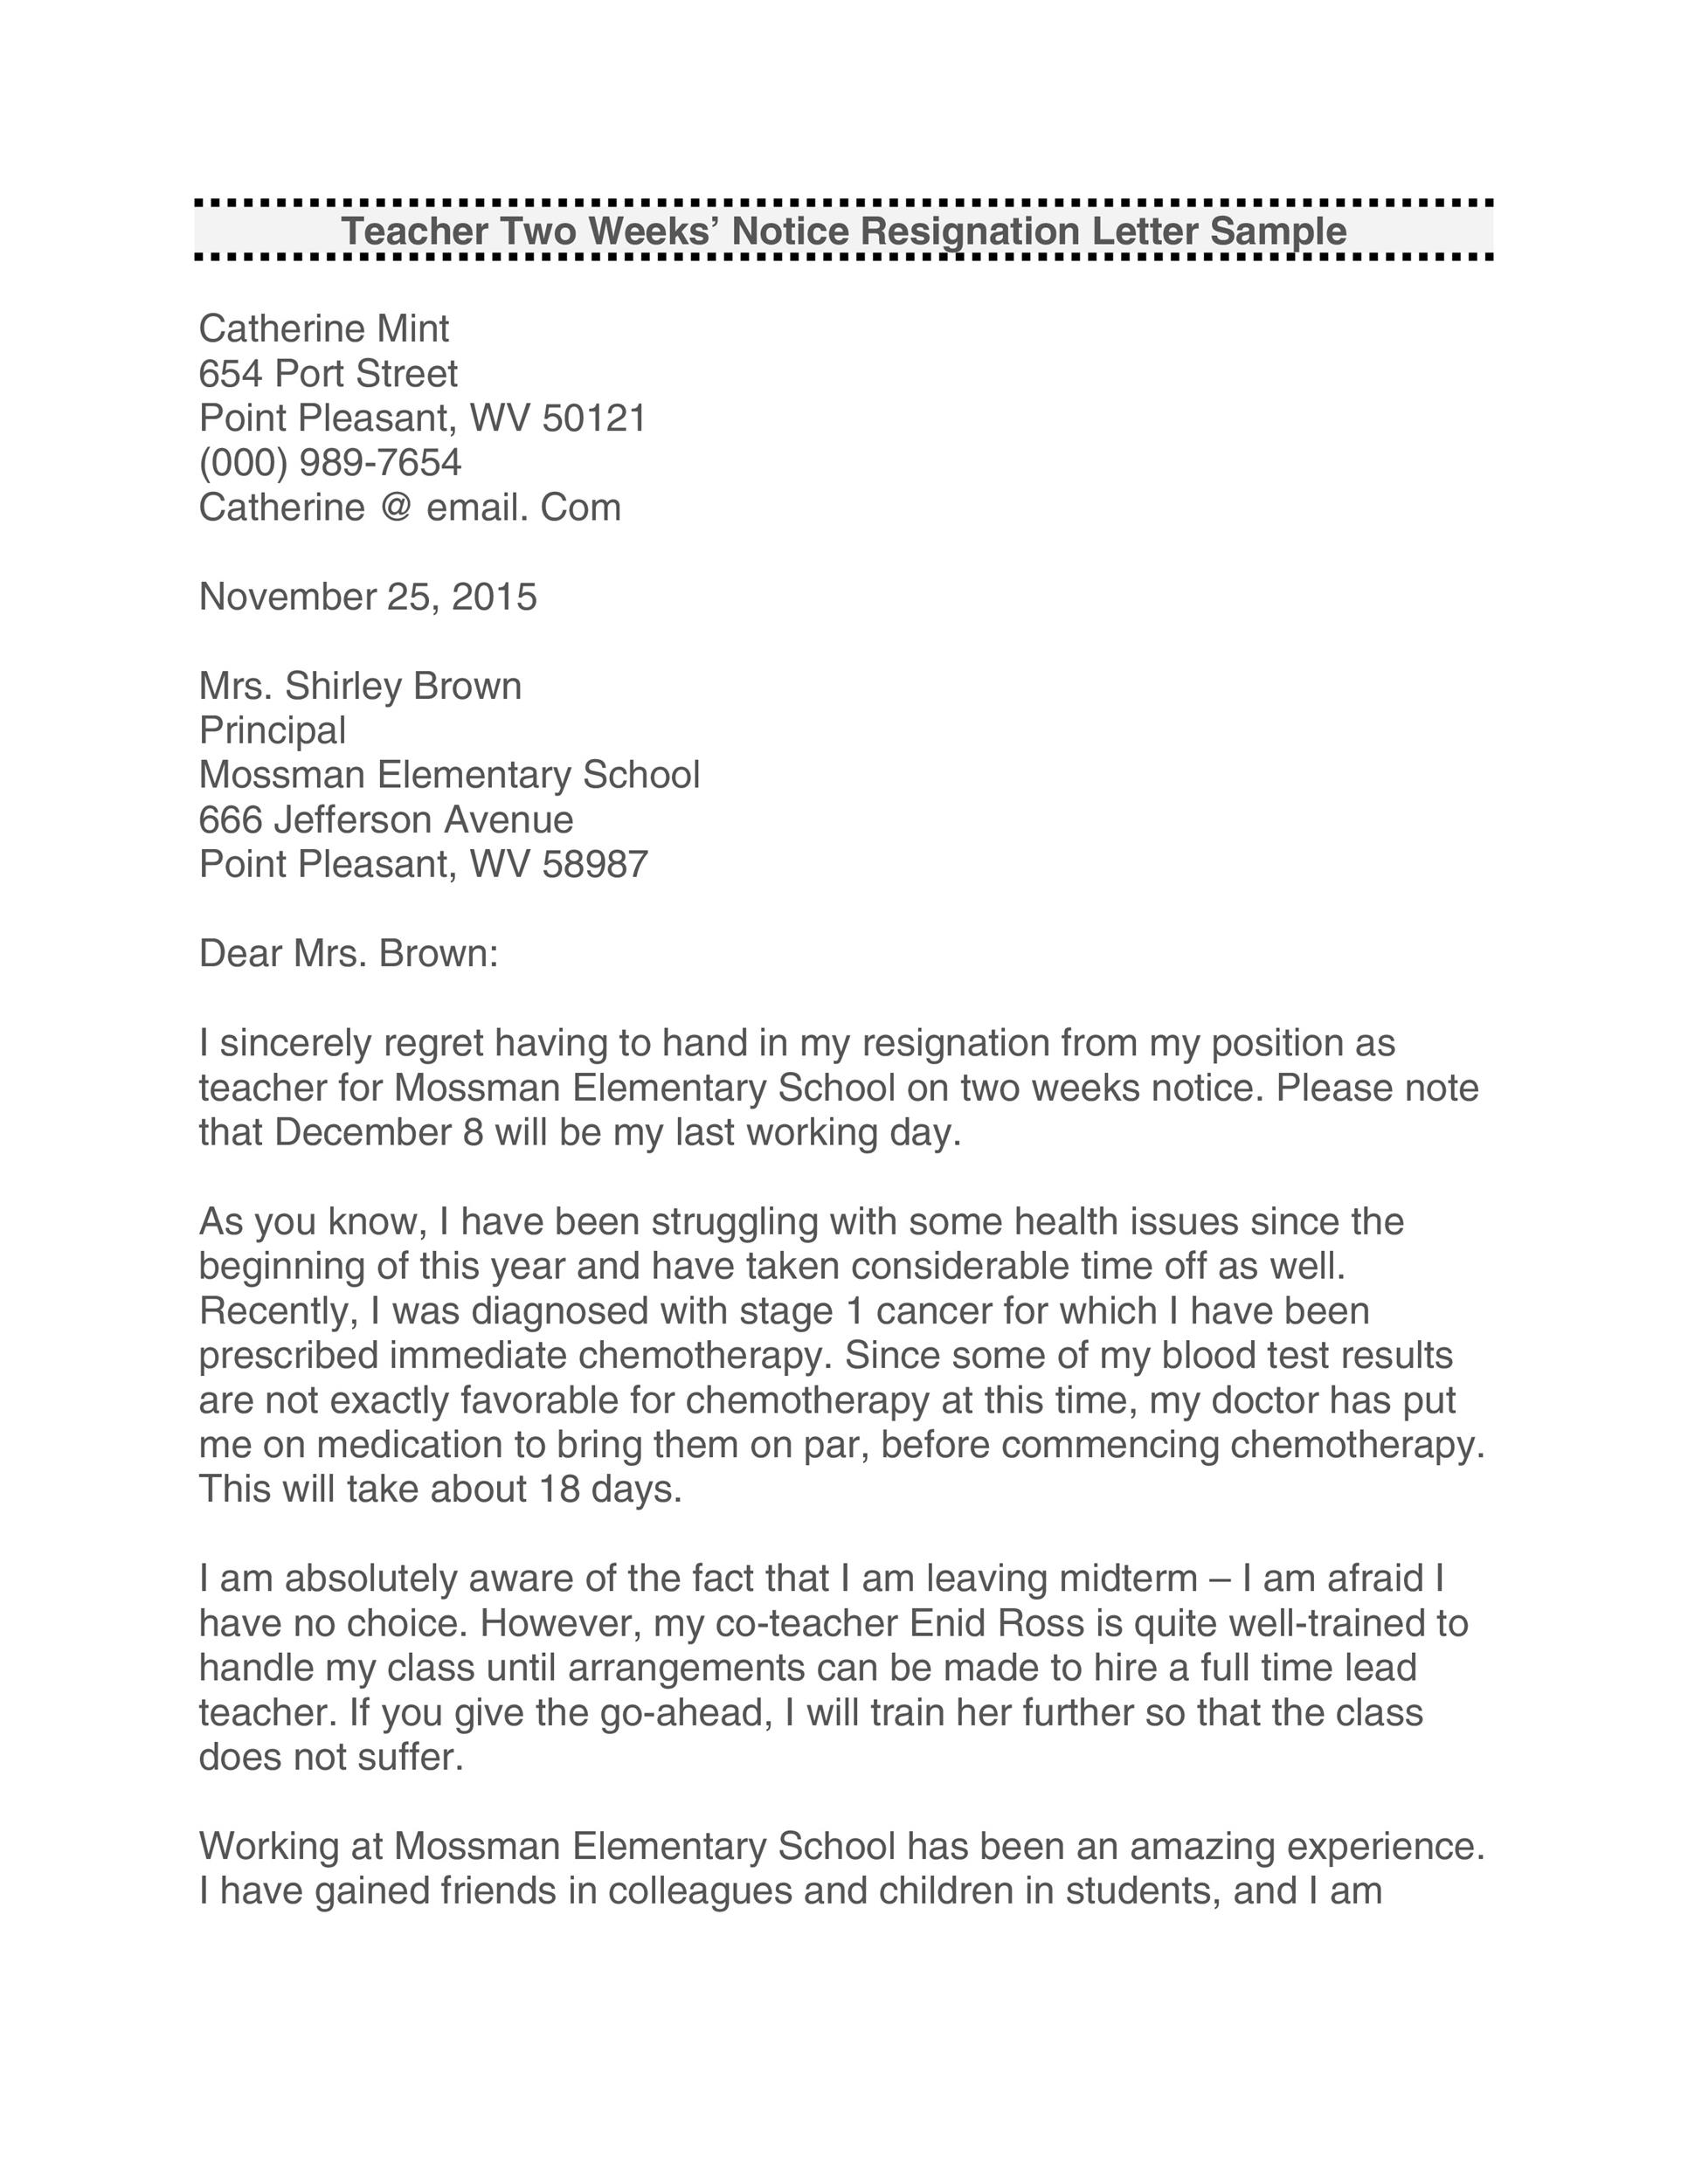 Free teacher resignation letter 23